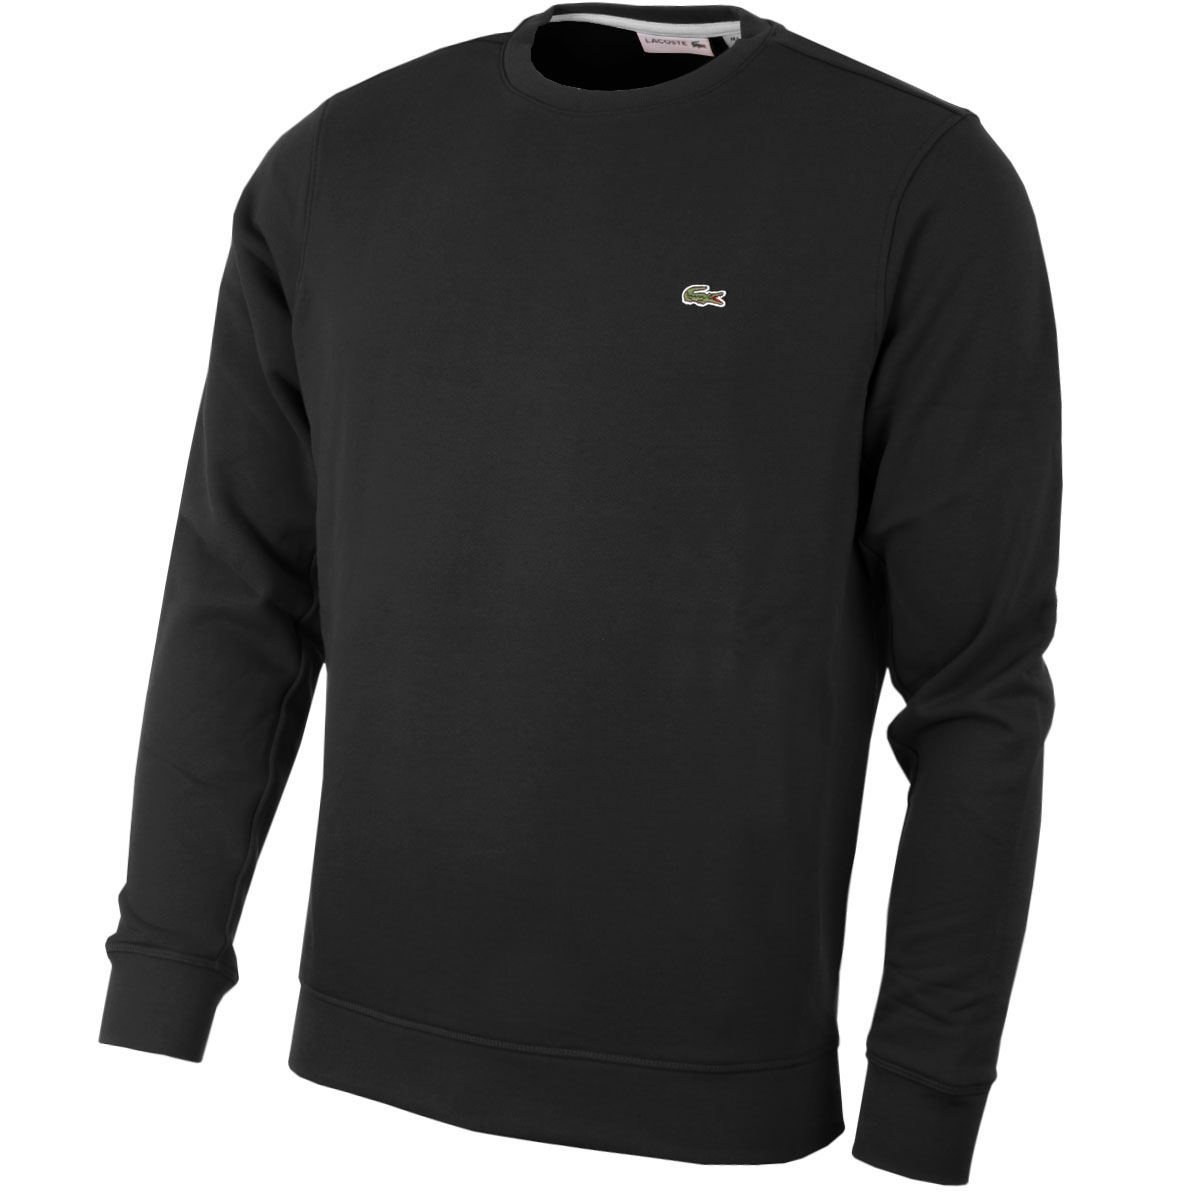 lacoste 2016 mens sh6619 crew neck sweatshirt jumper pullover sweater top ebay. Black Bedroom Furniture Sets. Home Design Ideas